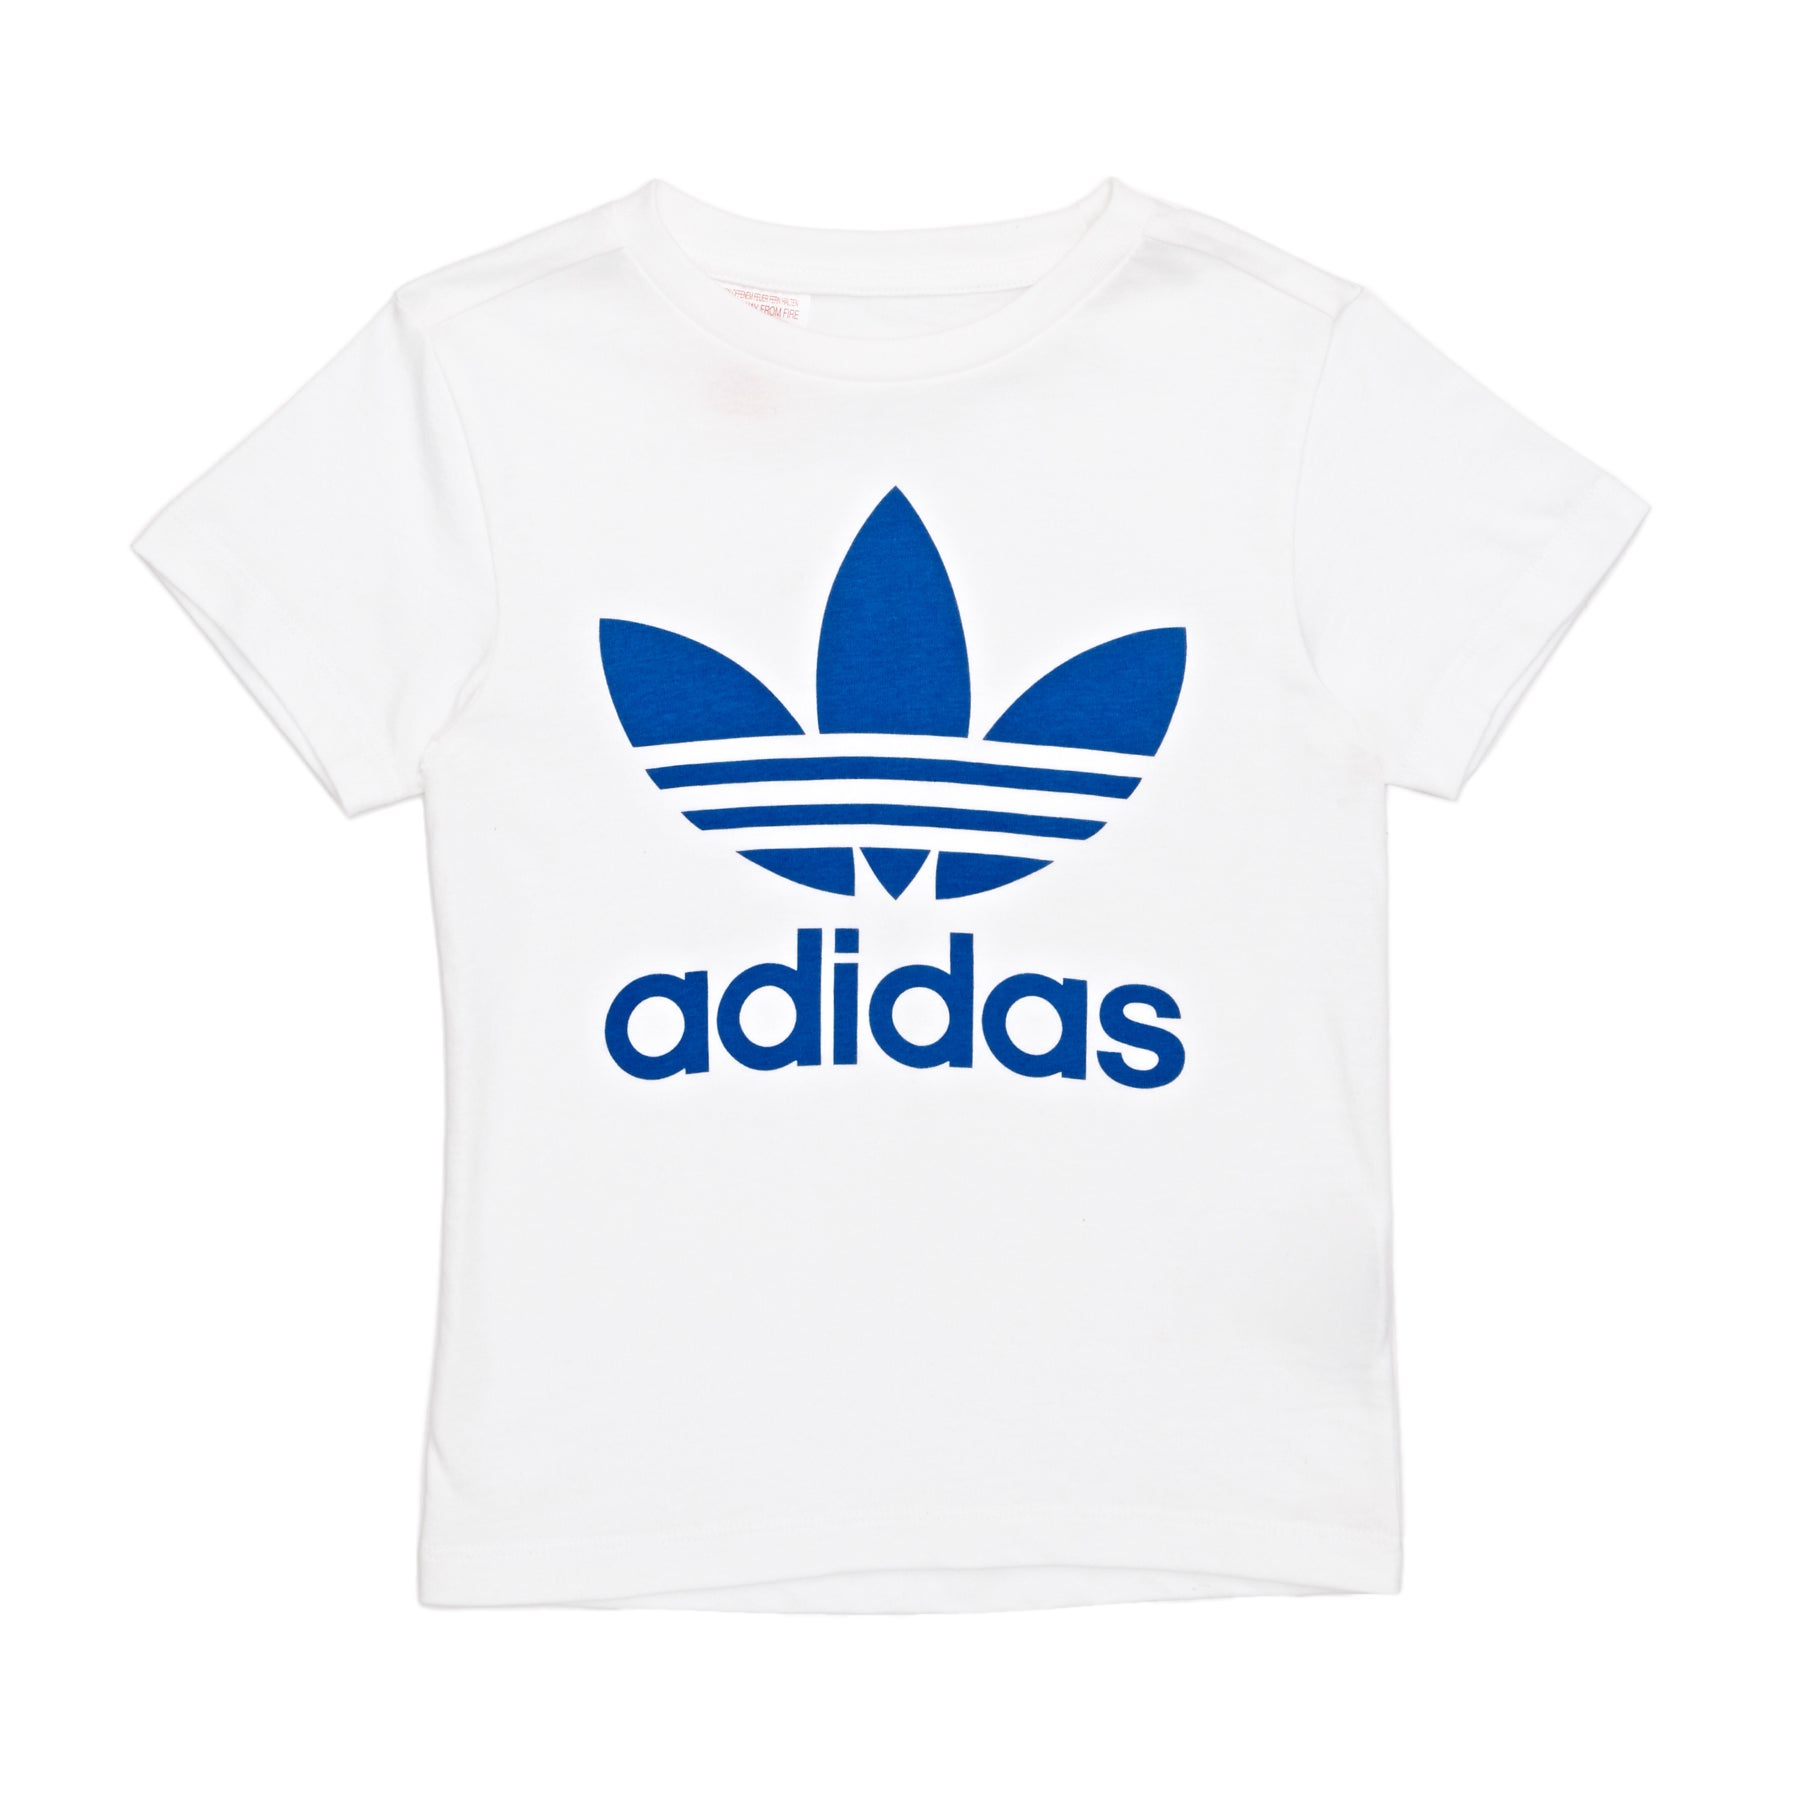 Camiseta de manga corta Boys Adidas Originals Trefoil - White/blue